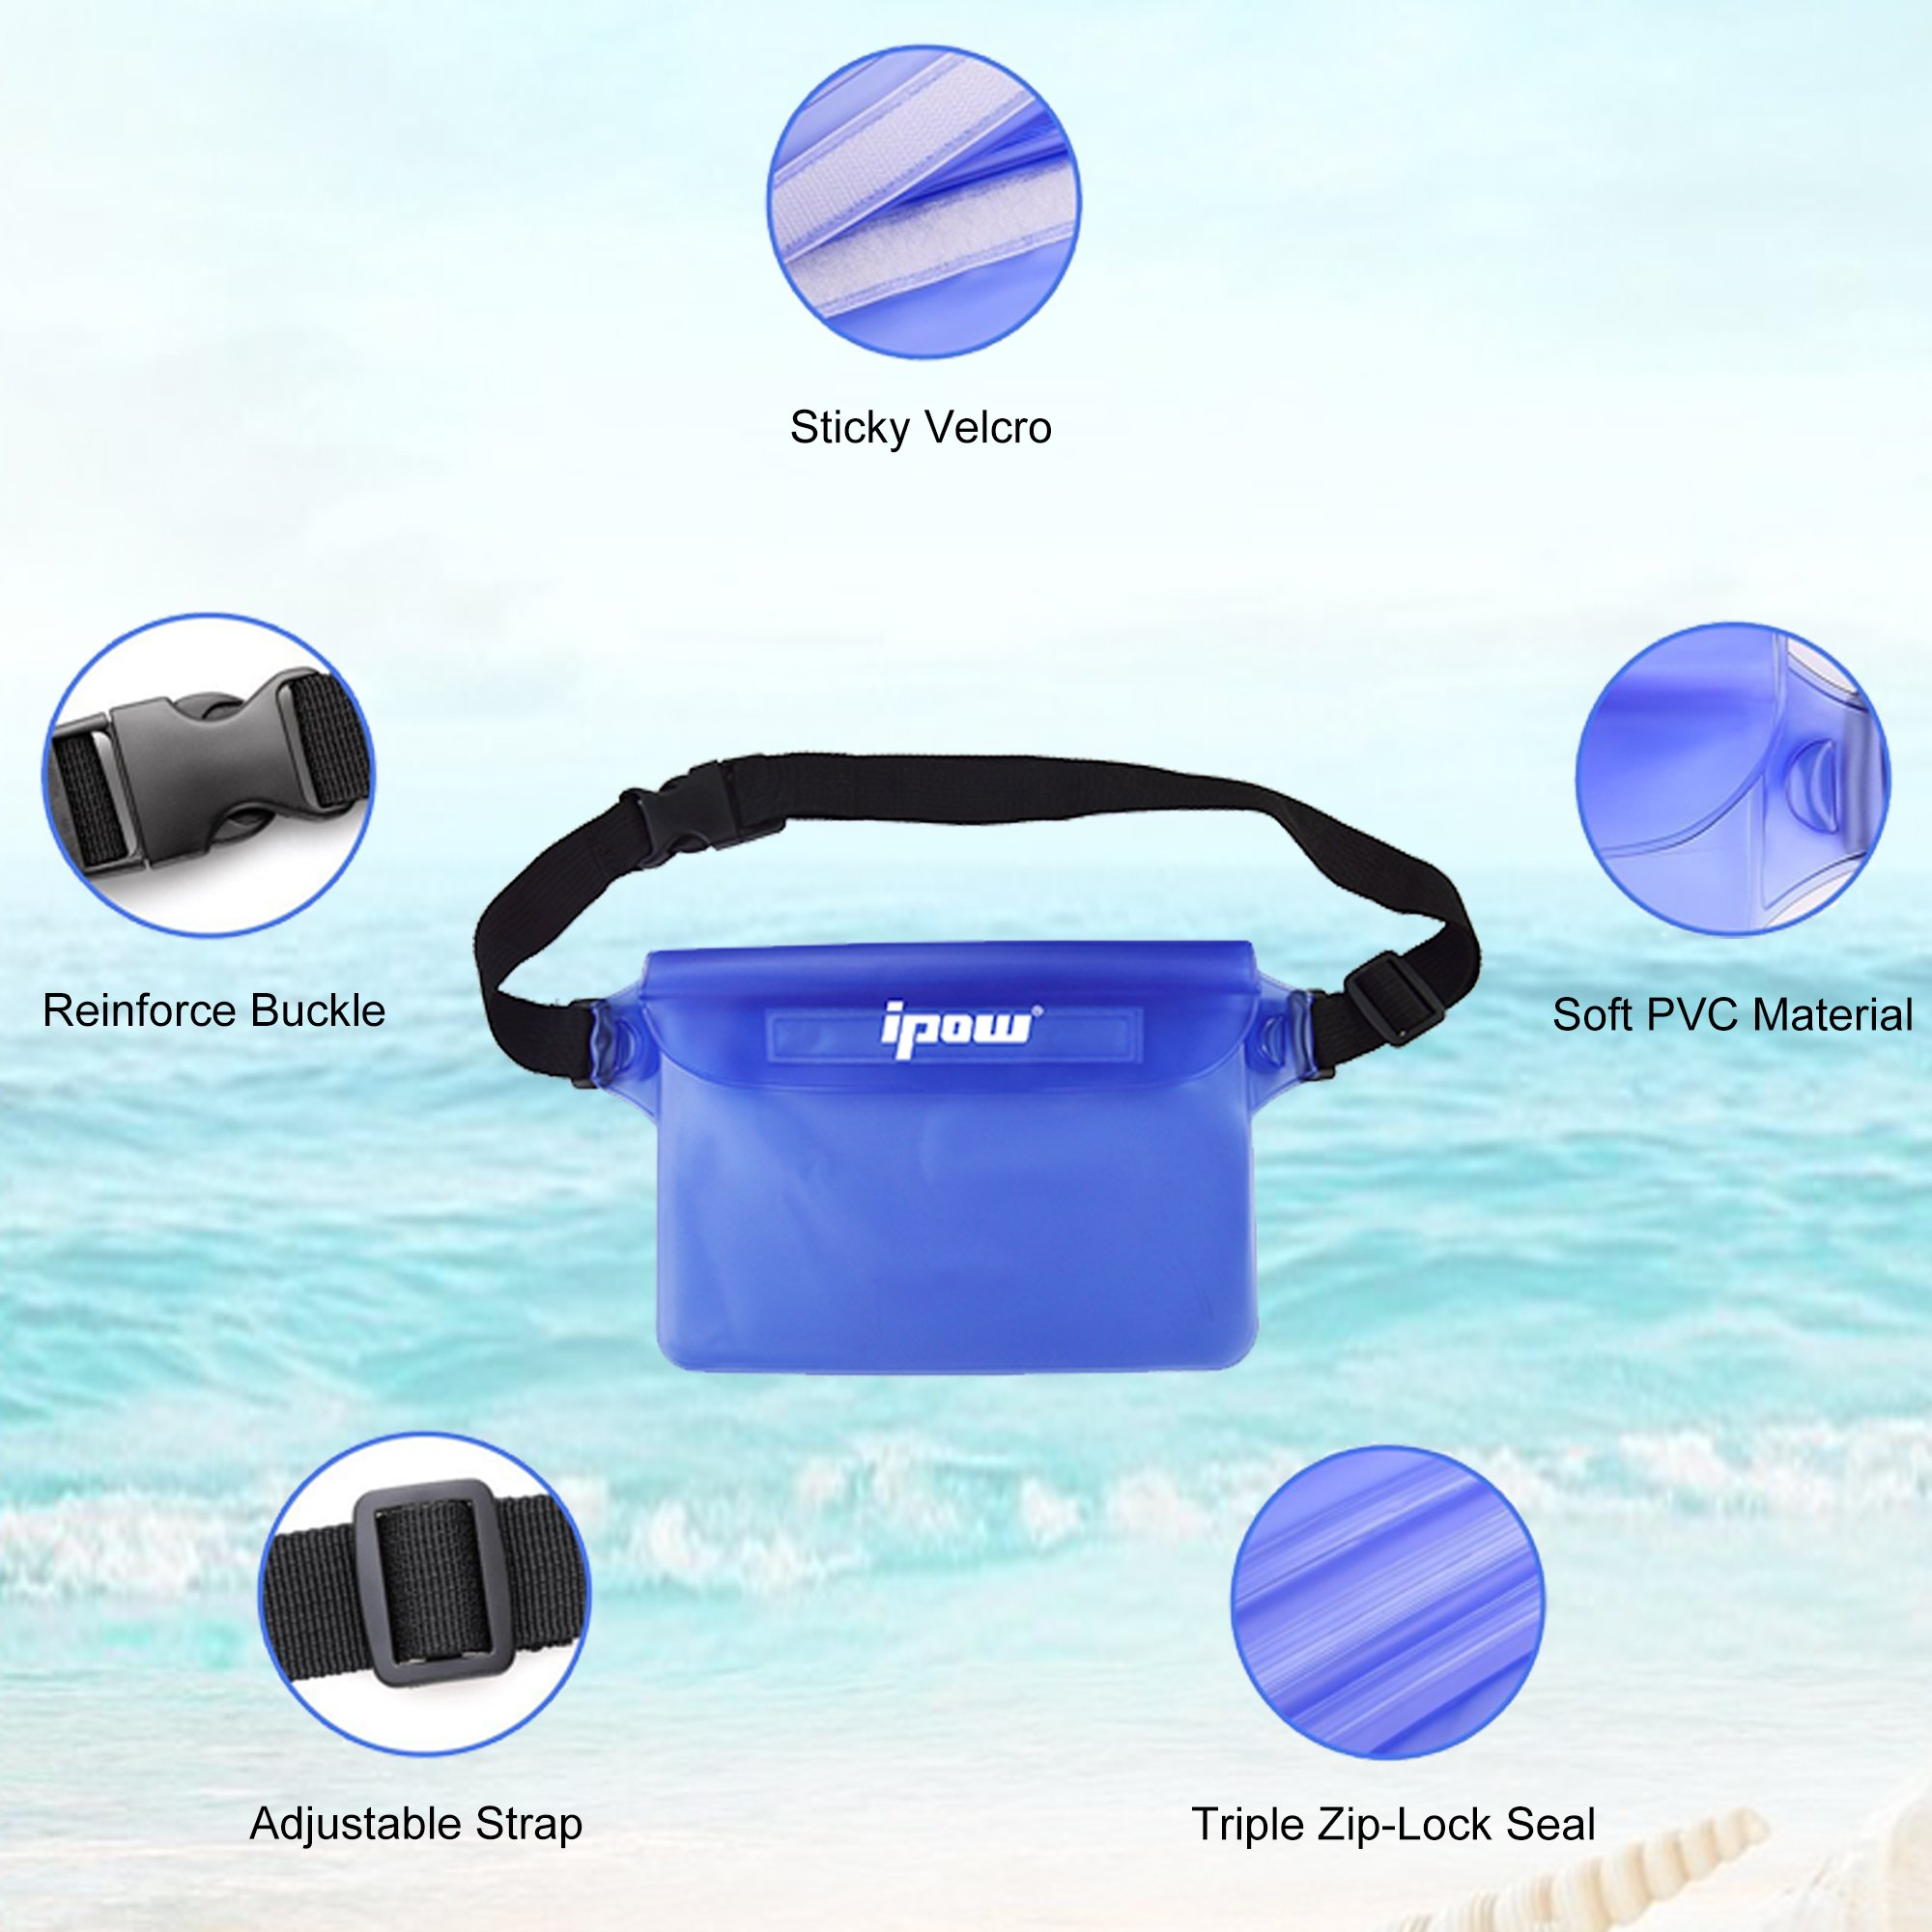 IPOW IP68 Waterproof Pouch with Waist Strap (2 Pack) | Best Way to Keep Your Phone and Valuables Safe and Dry | Perfect for Boating Swimming Snorkeling Kayaking Beach Pool Water Parks by IPOW (Image #3)